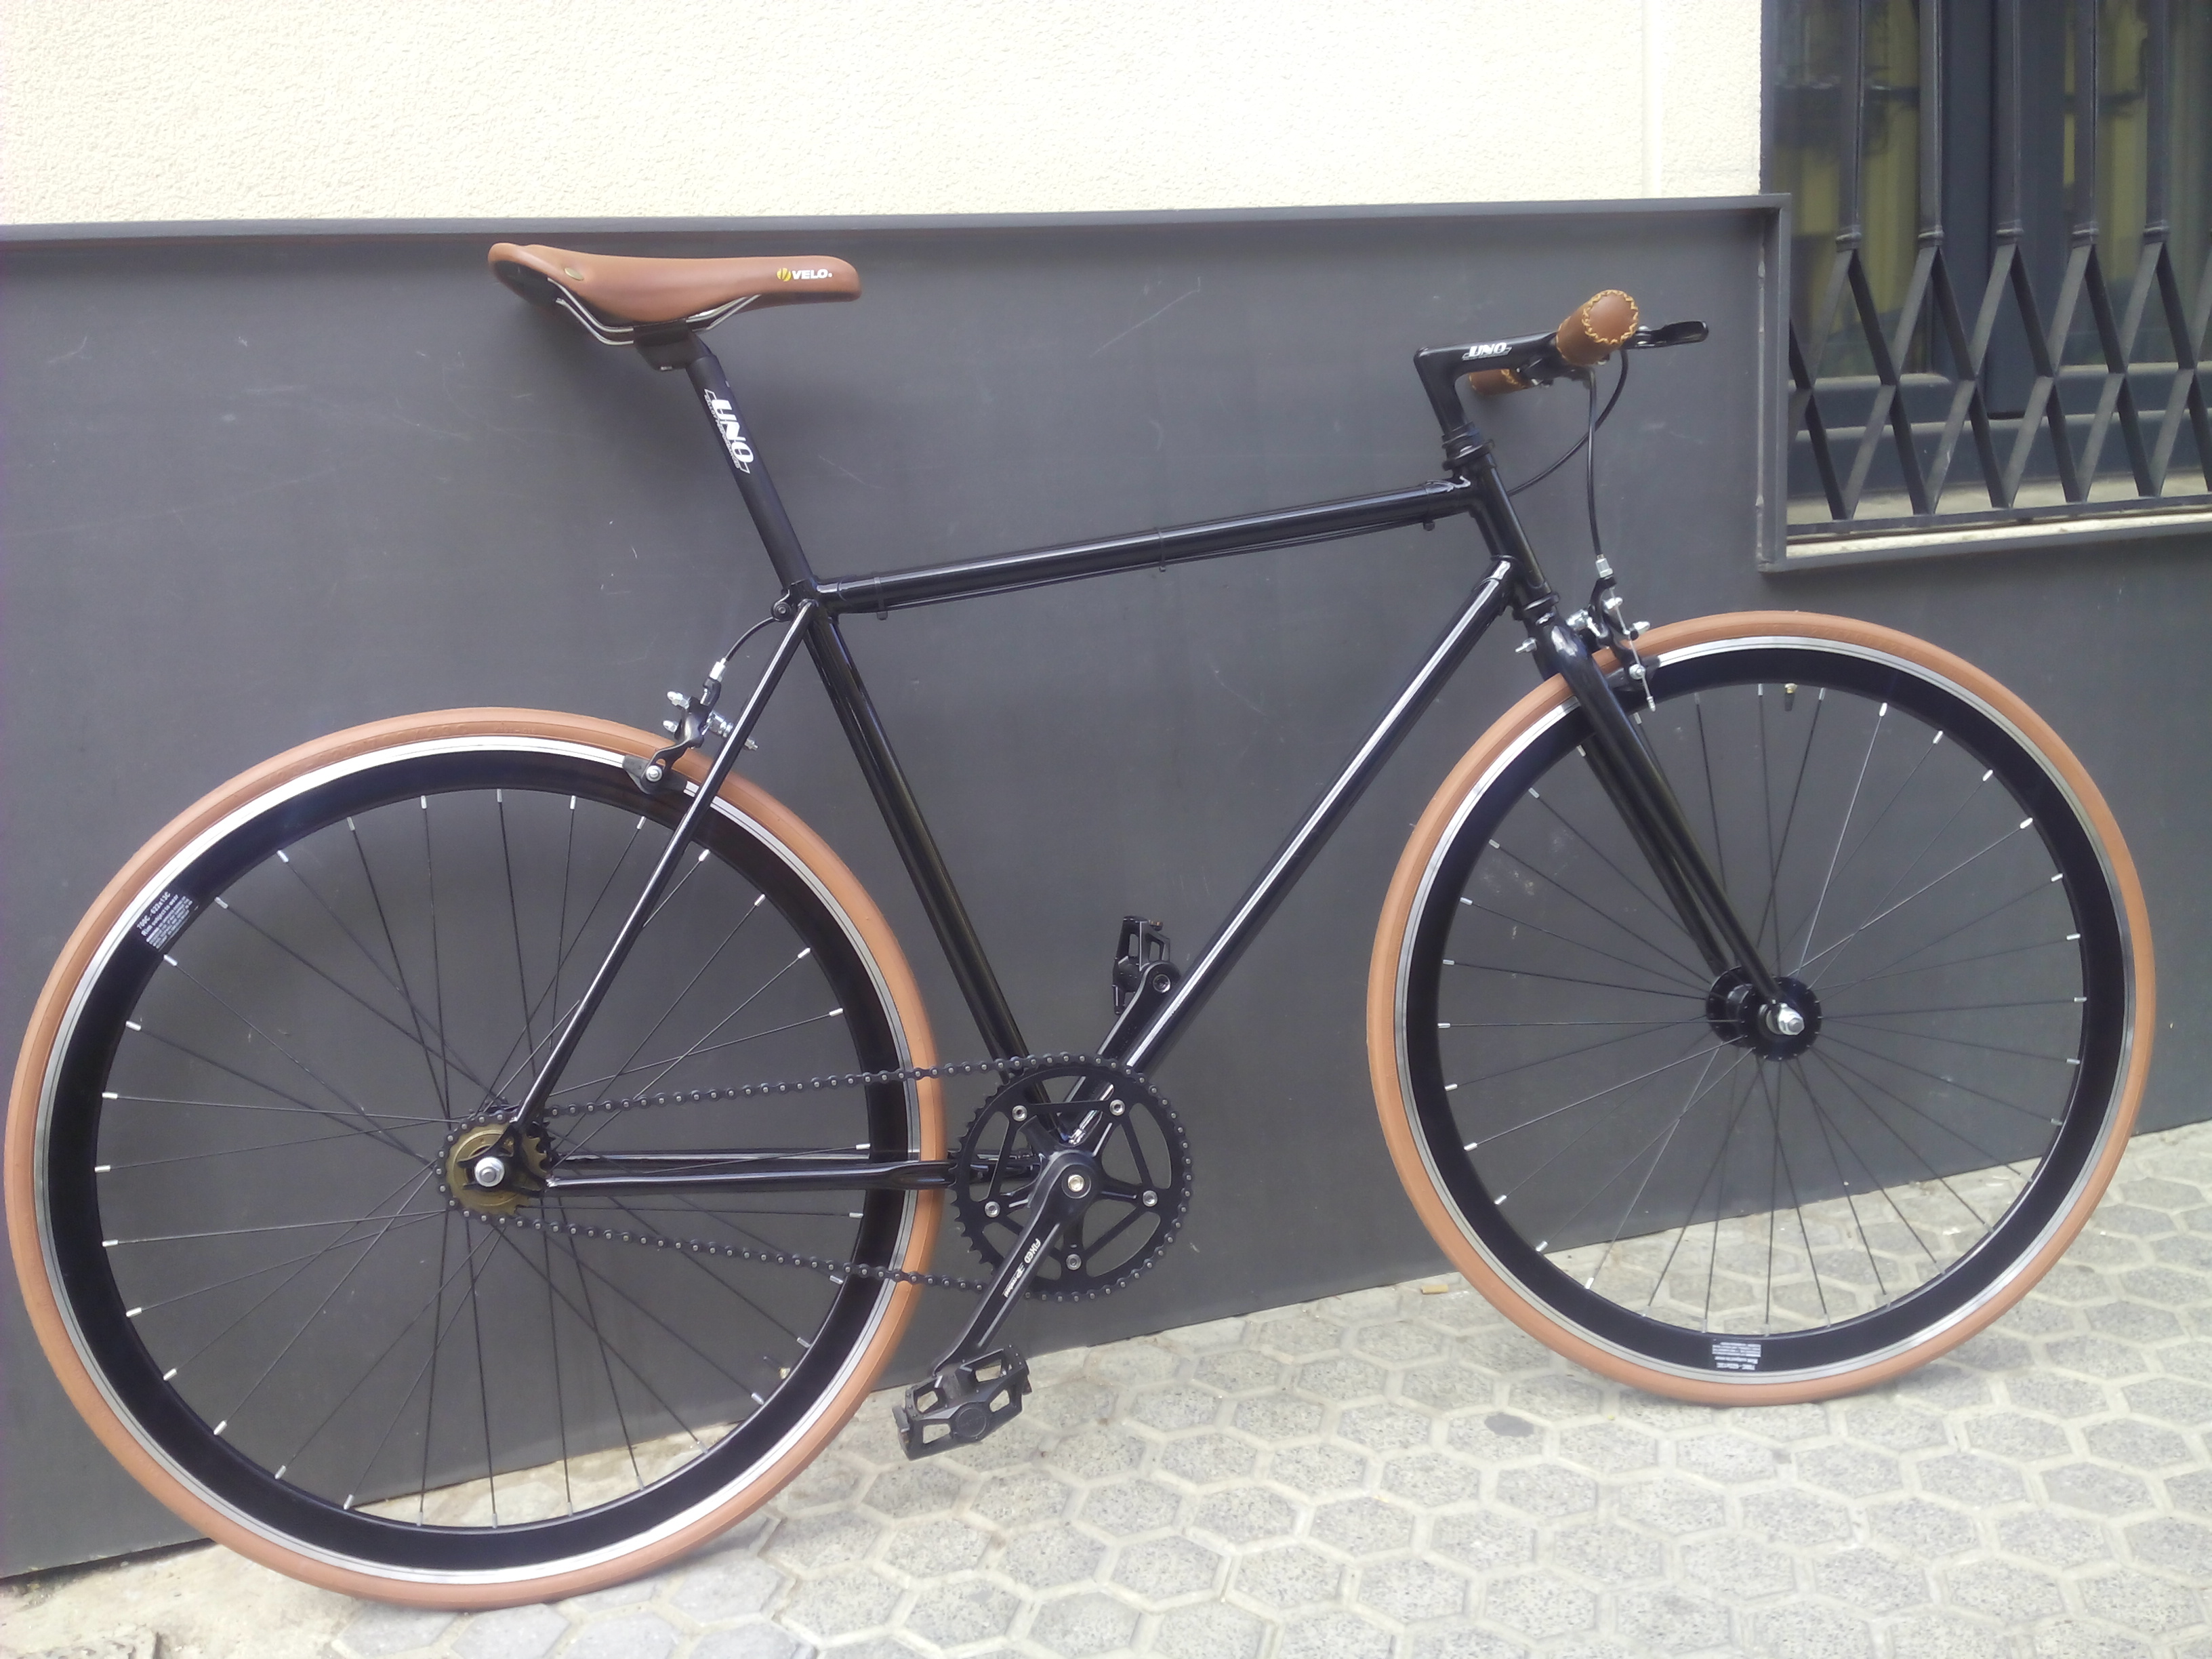 Fixie-Single speed Negra y Cuero